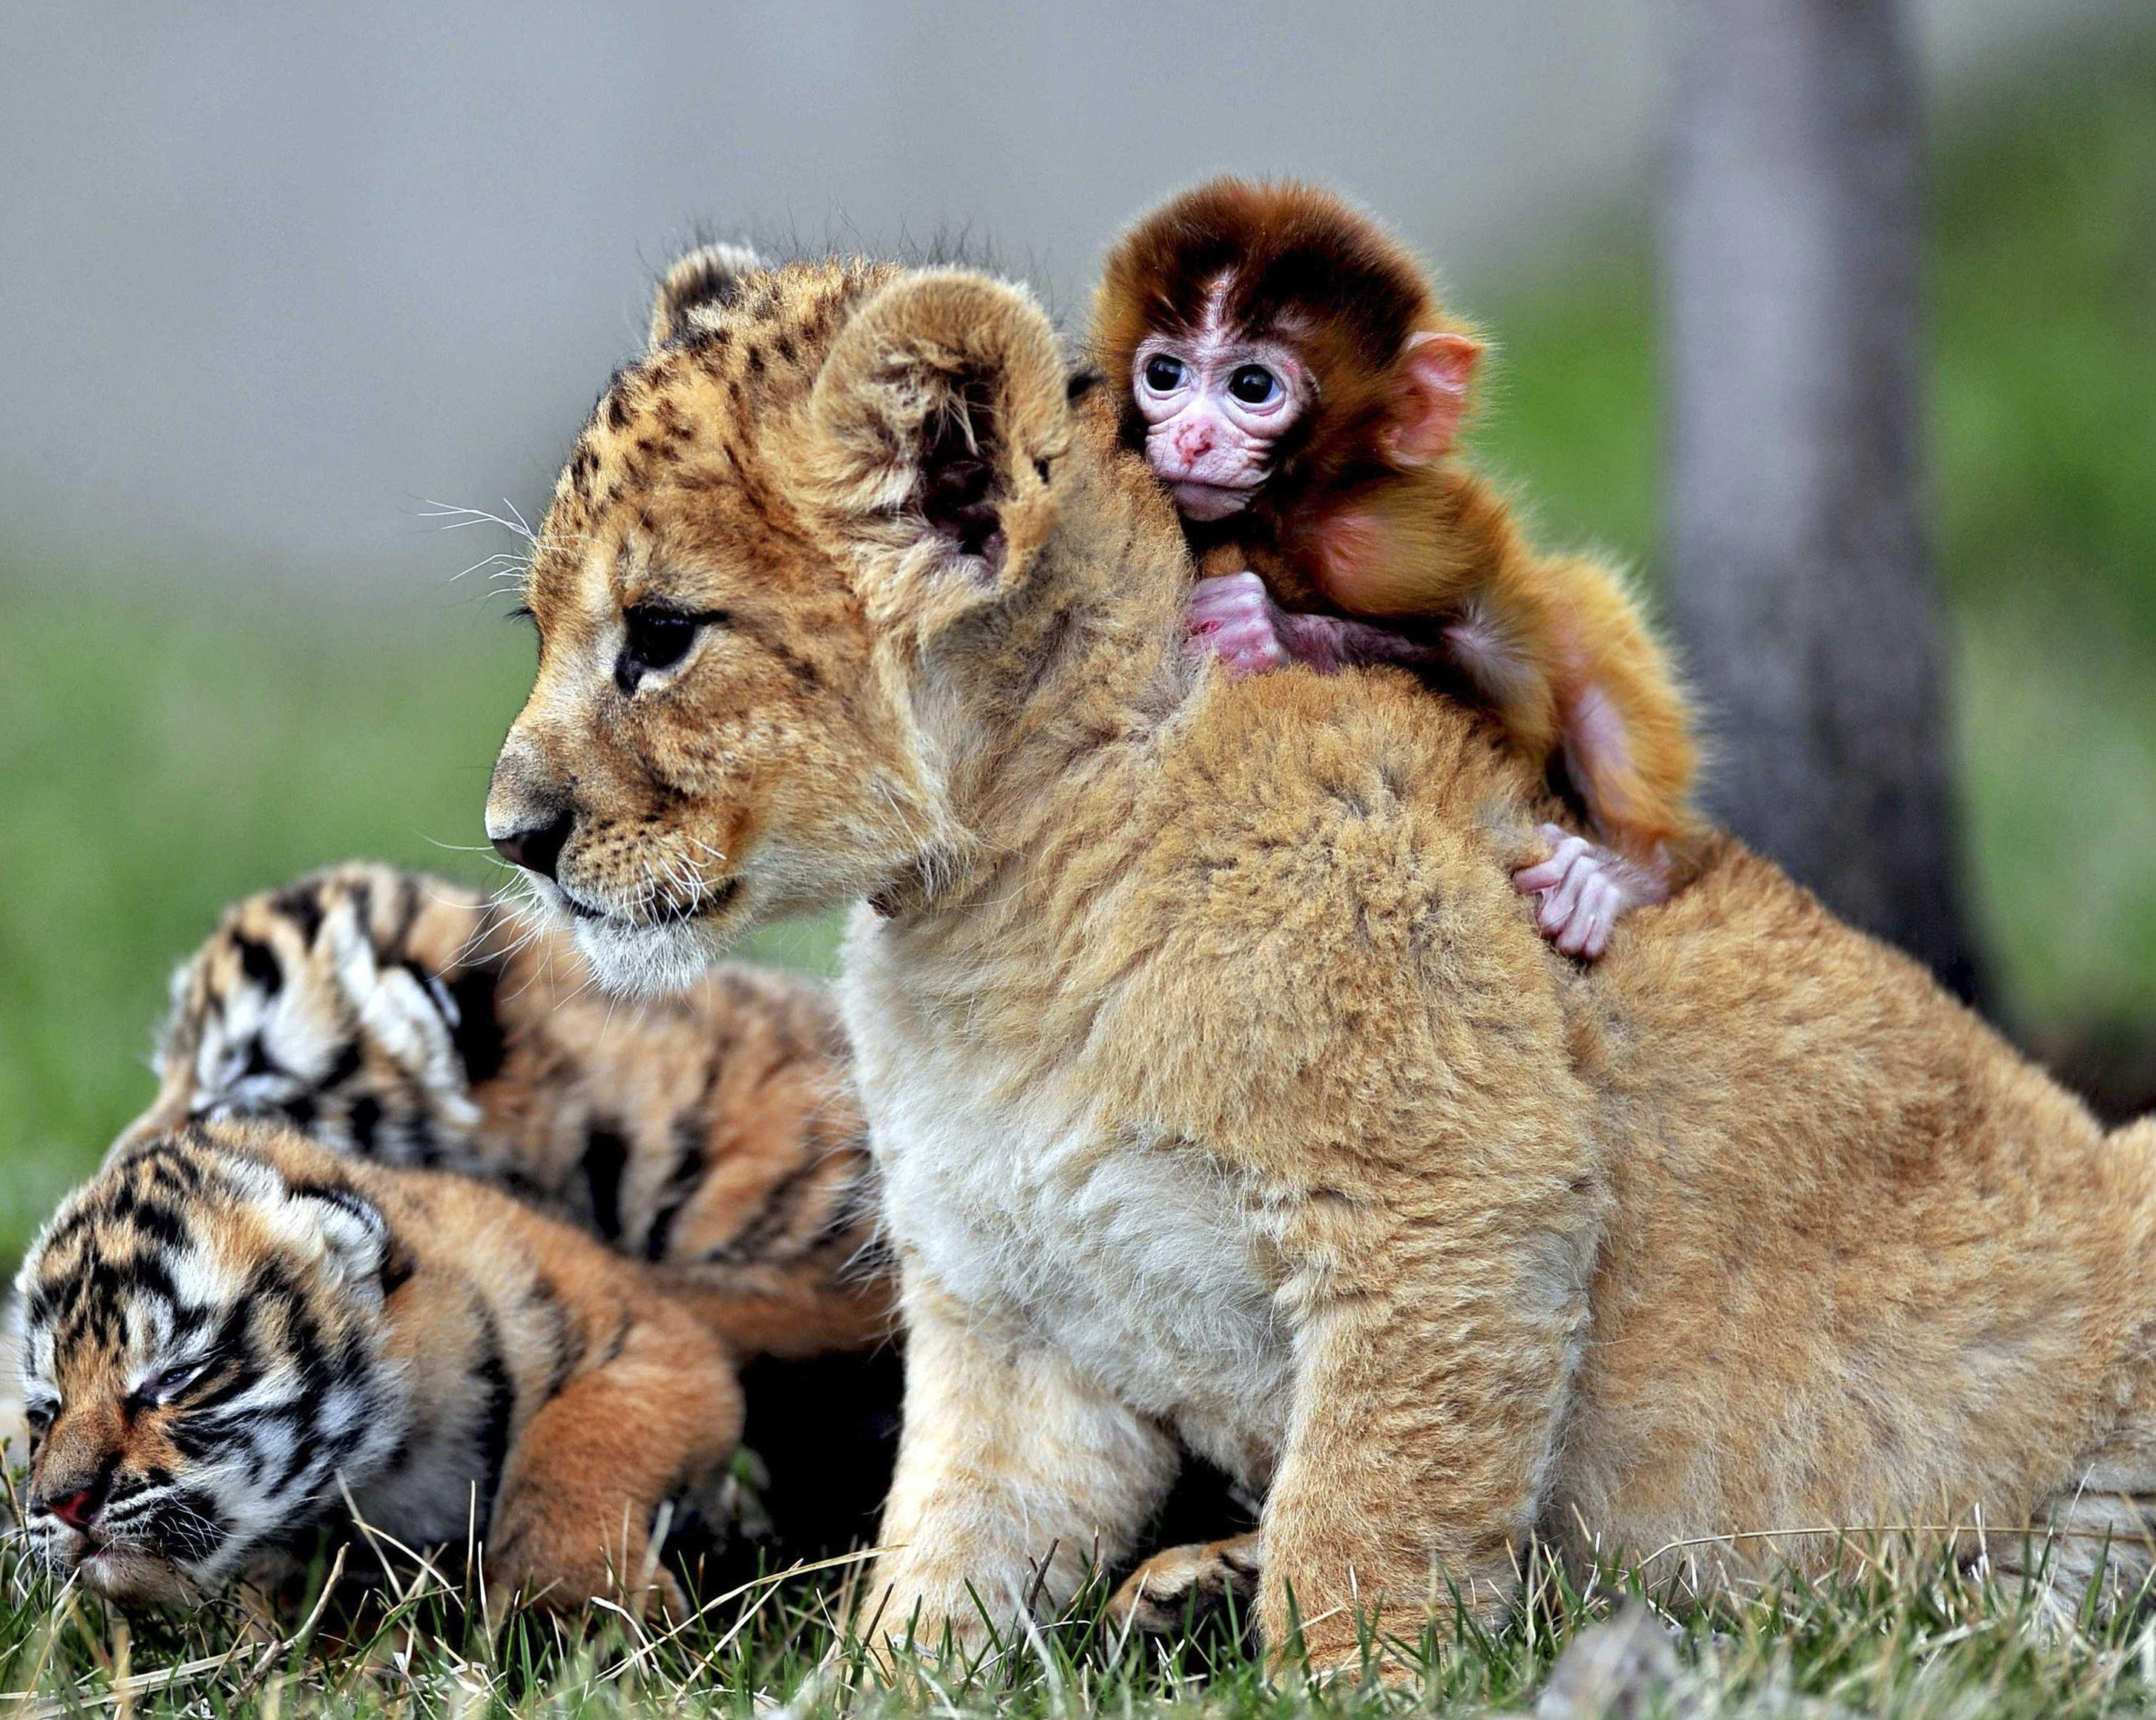 Cute baby wild animals wallpapers wallpaper cave - Cute baby animal desktop backgrounds ...